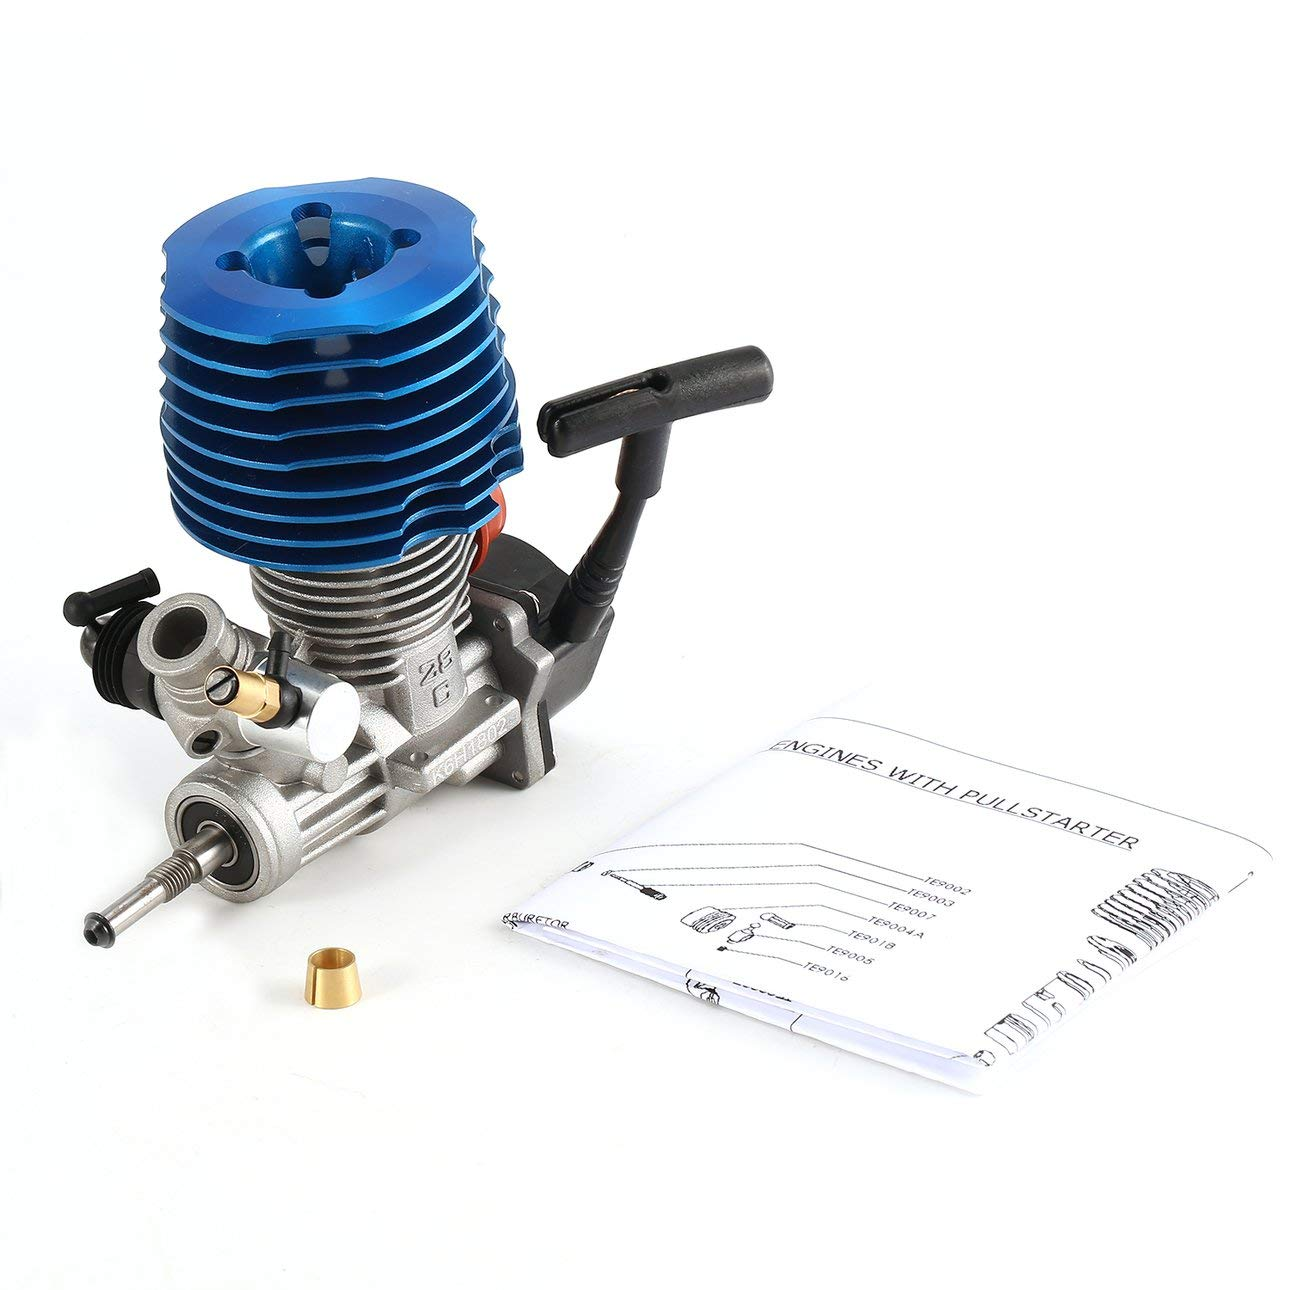 Liobaba RC Car 1: 8 Buggy Monster Truggy Nitro Engine SH 28 CXP Engine M28-P3 4.57CC 3.8hp 33000 RPM Side Exhaust Pull Starter